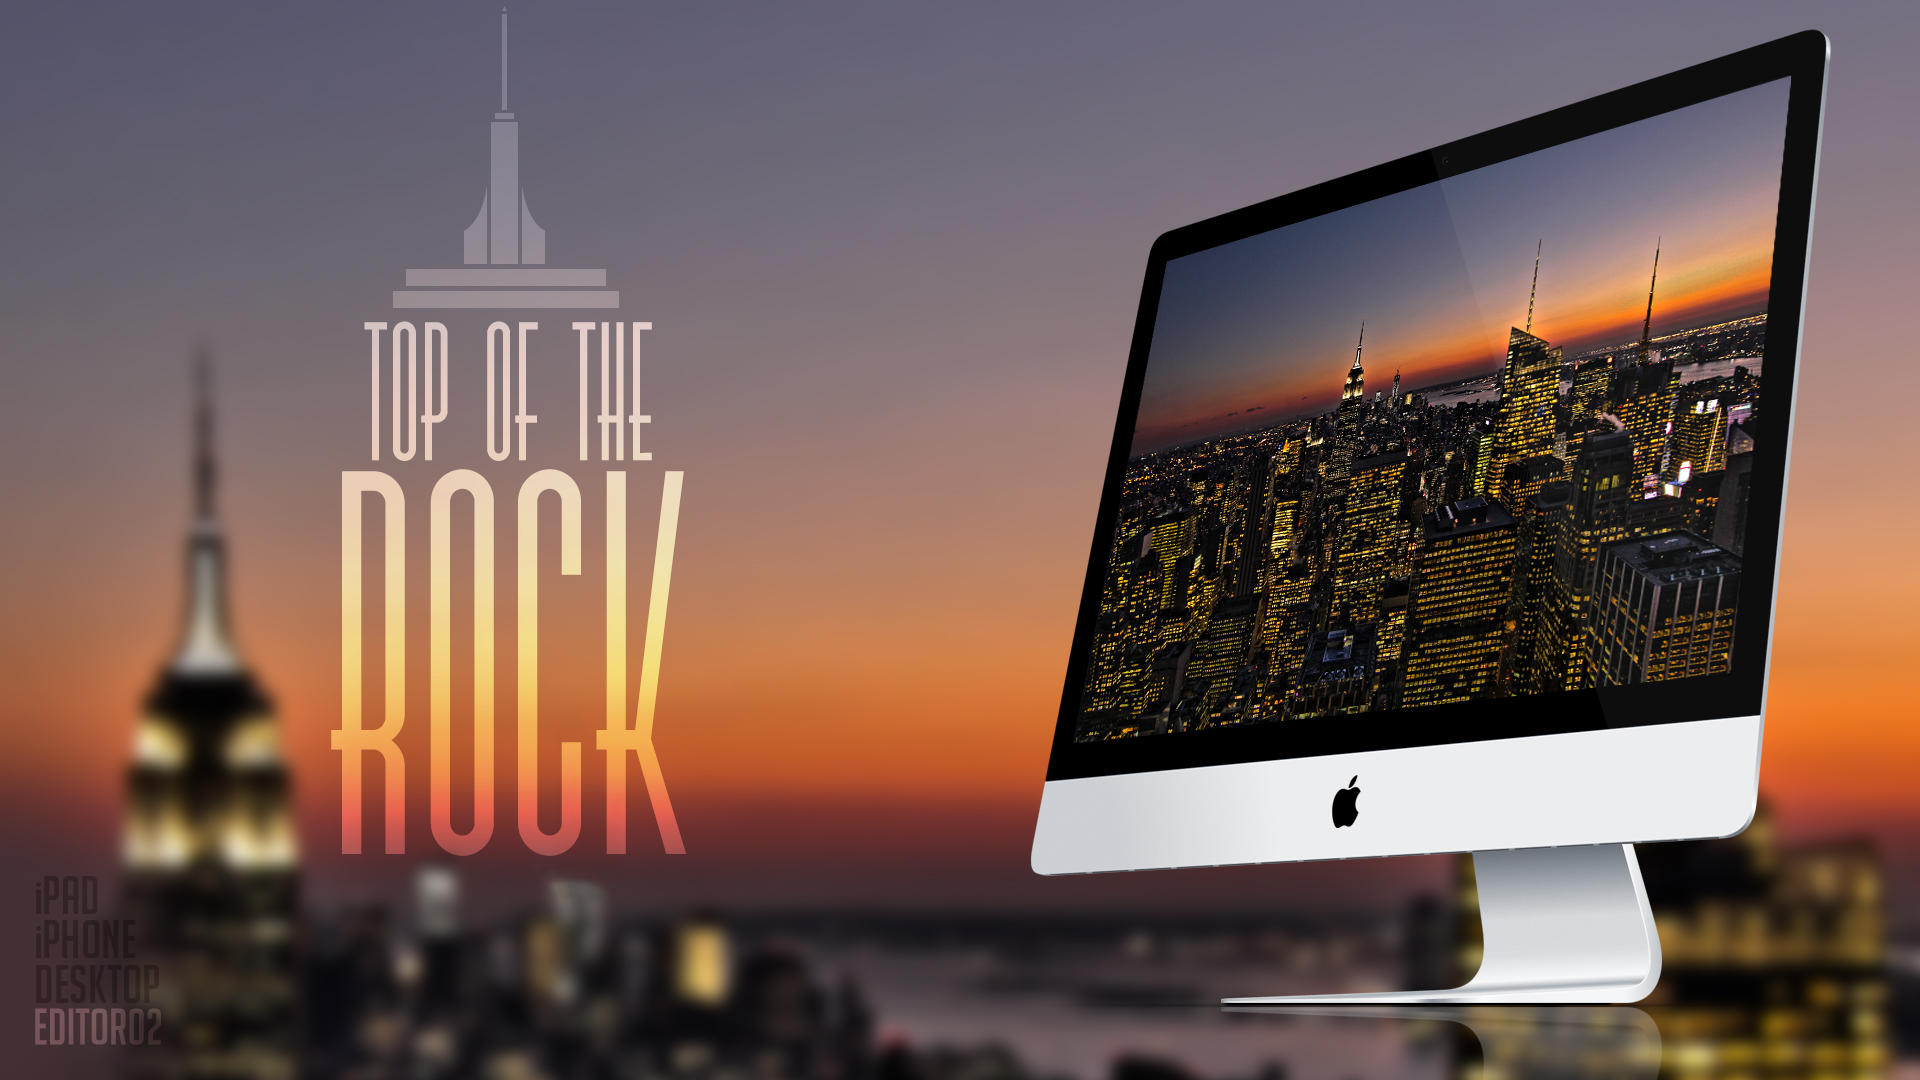 Top of the Rock - Wallpaper by GavinAsh